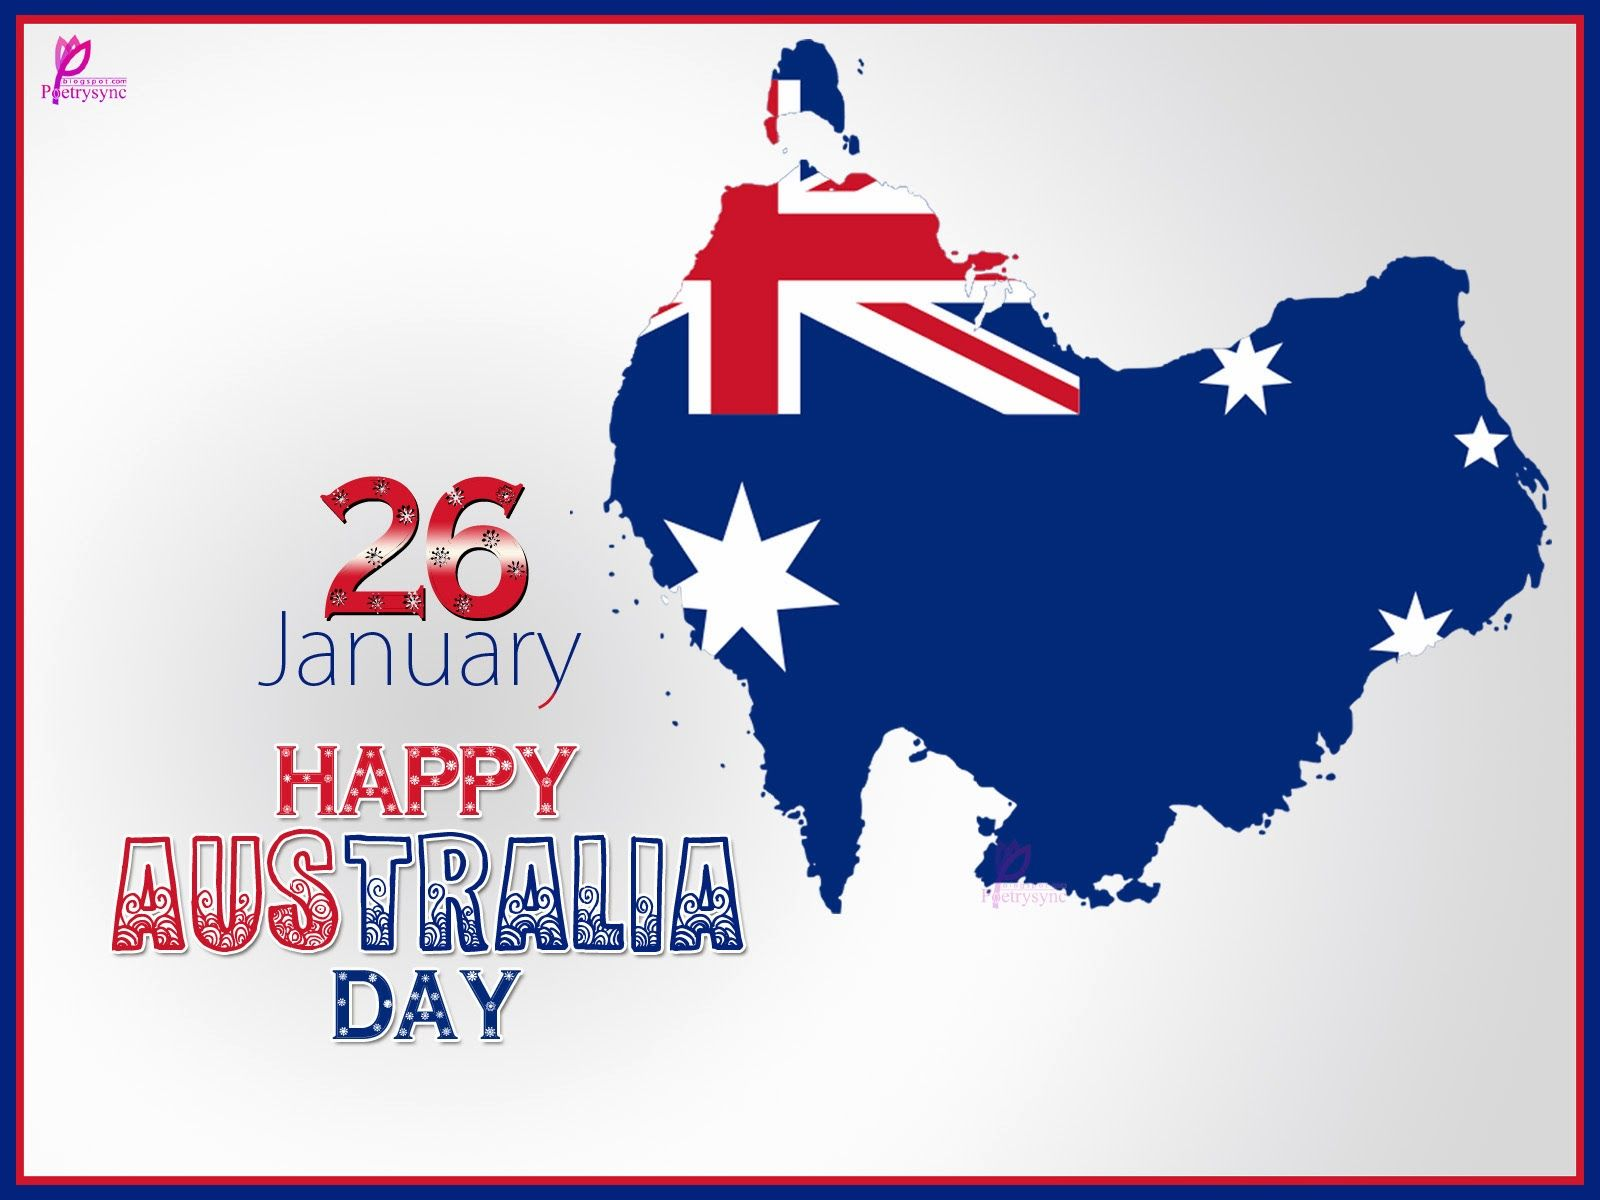 Happy australia day greetings and wishes image wallpaper happy australia day greetings and wishes image wallpaper kristyandbryce Gallery